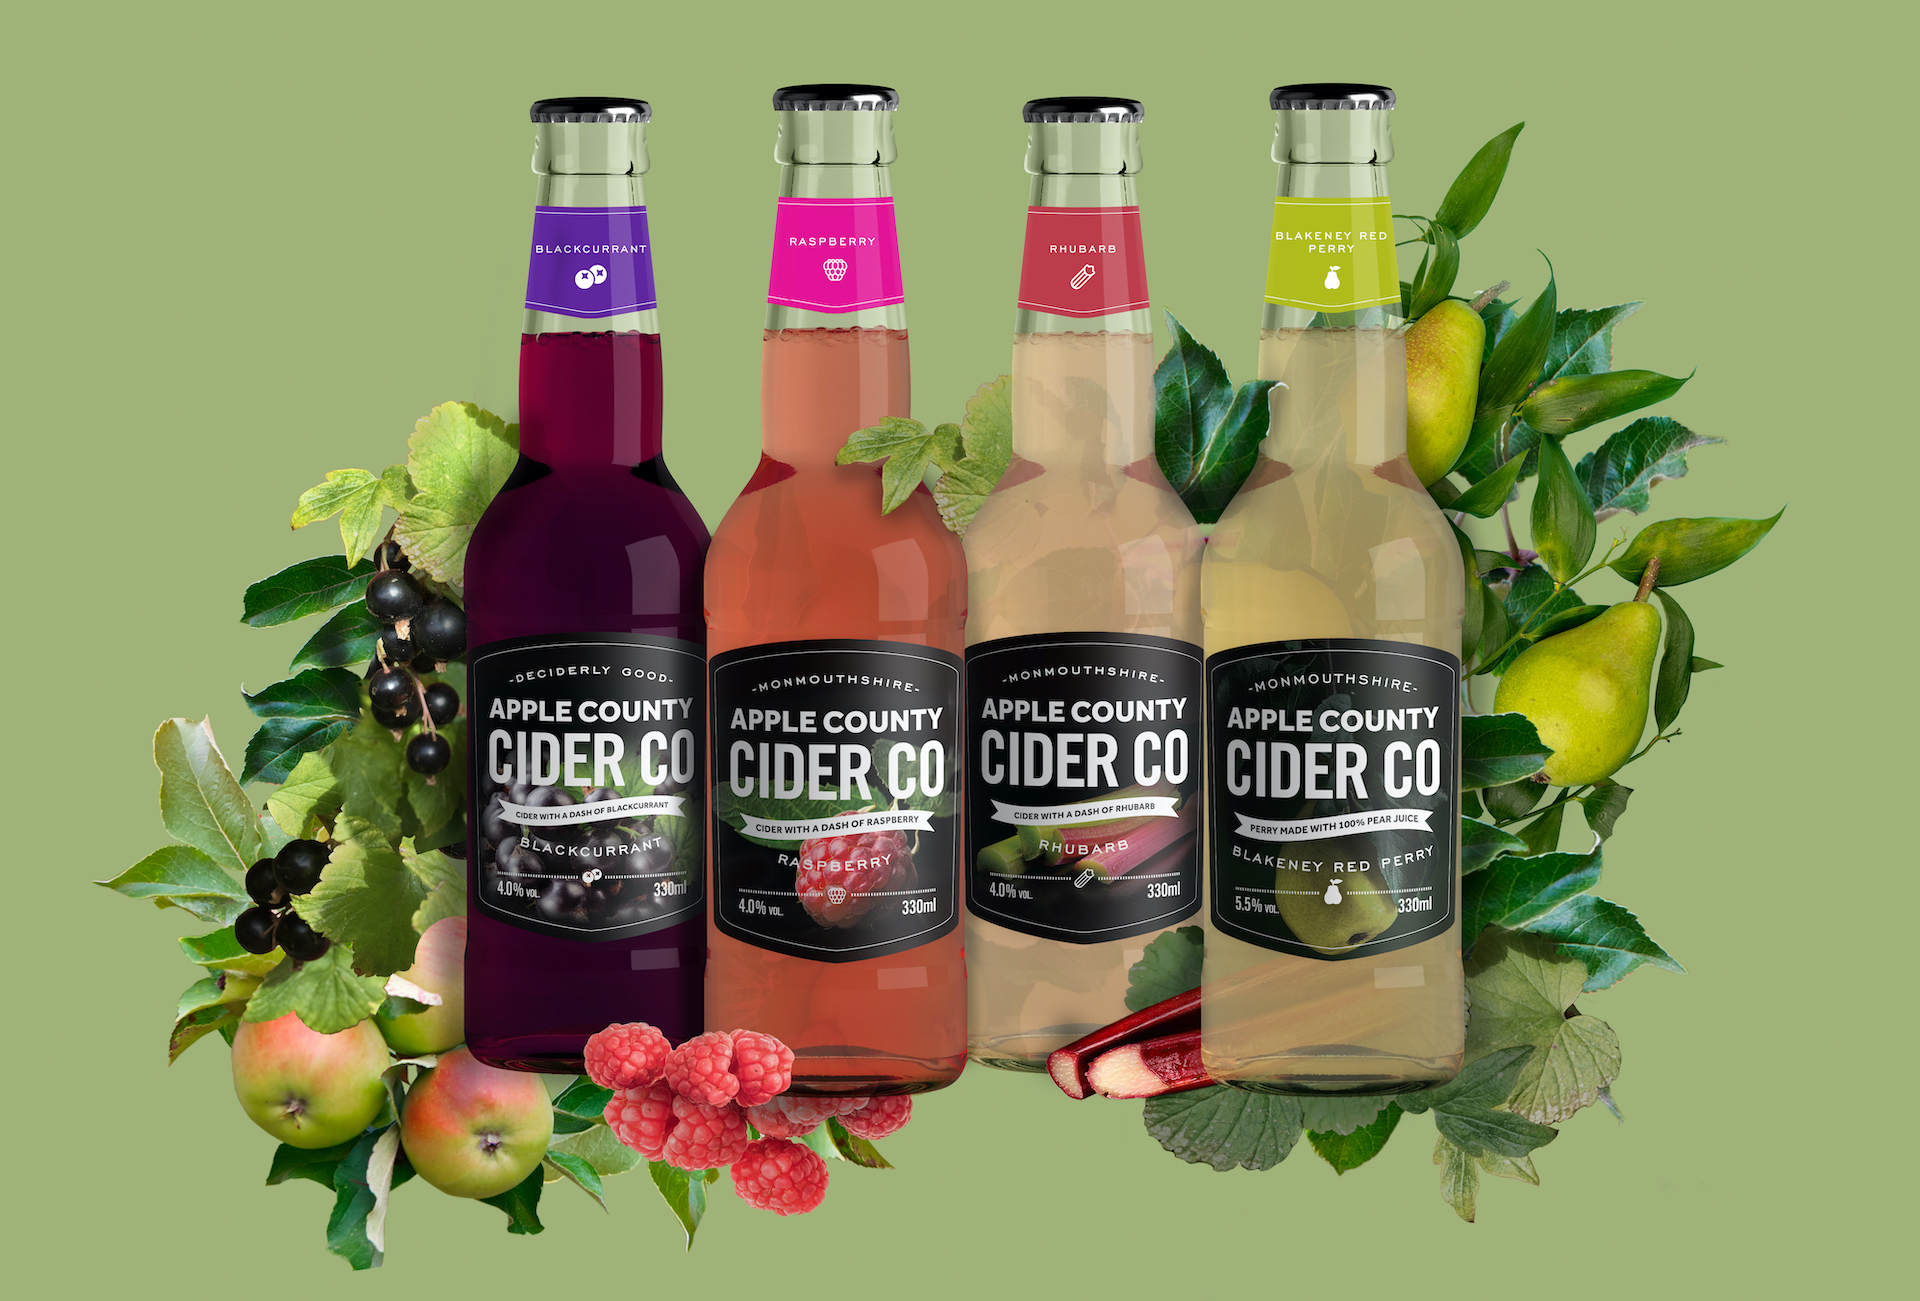 The range of Apple County Cider Company fruit ciders in bottles